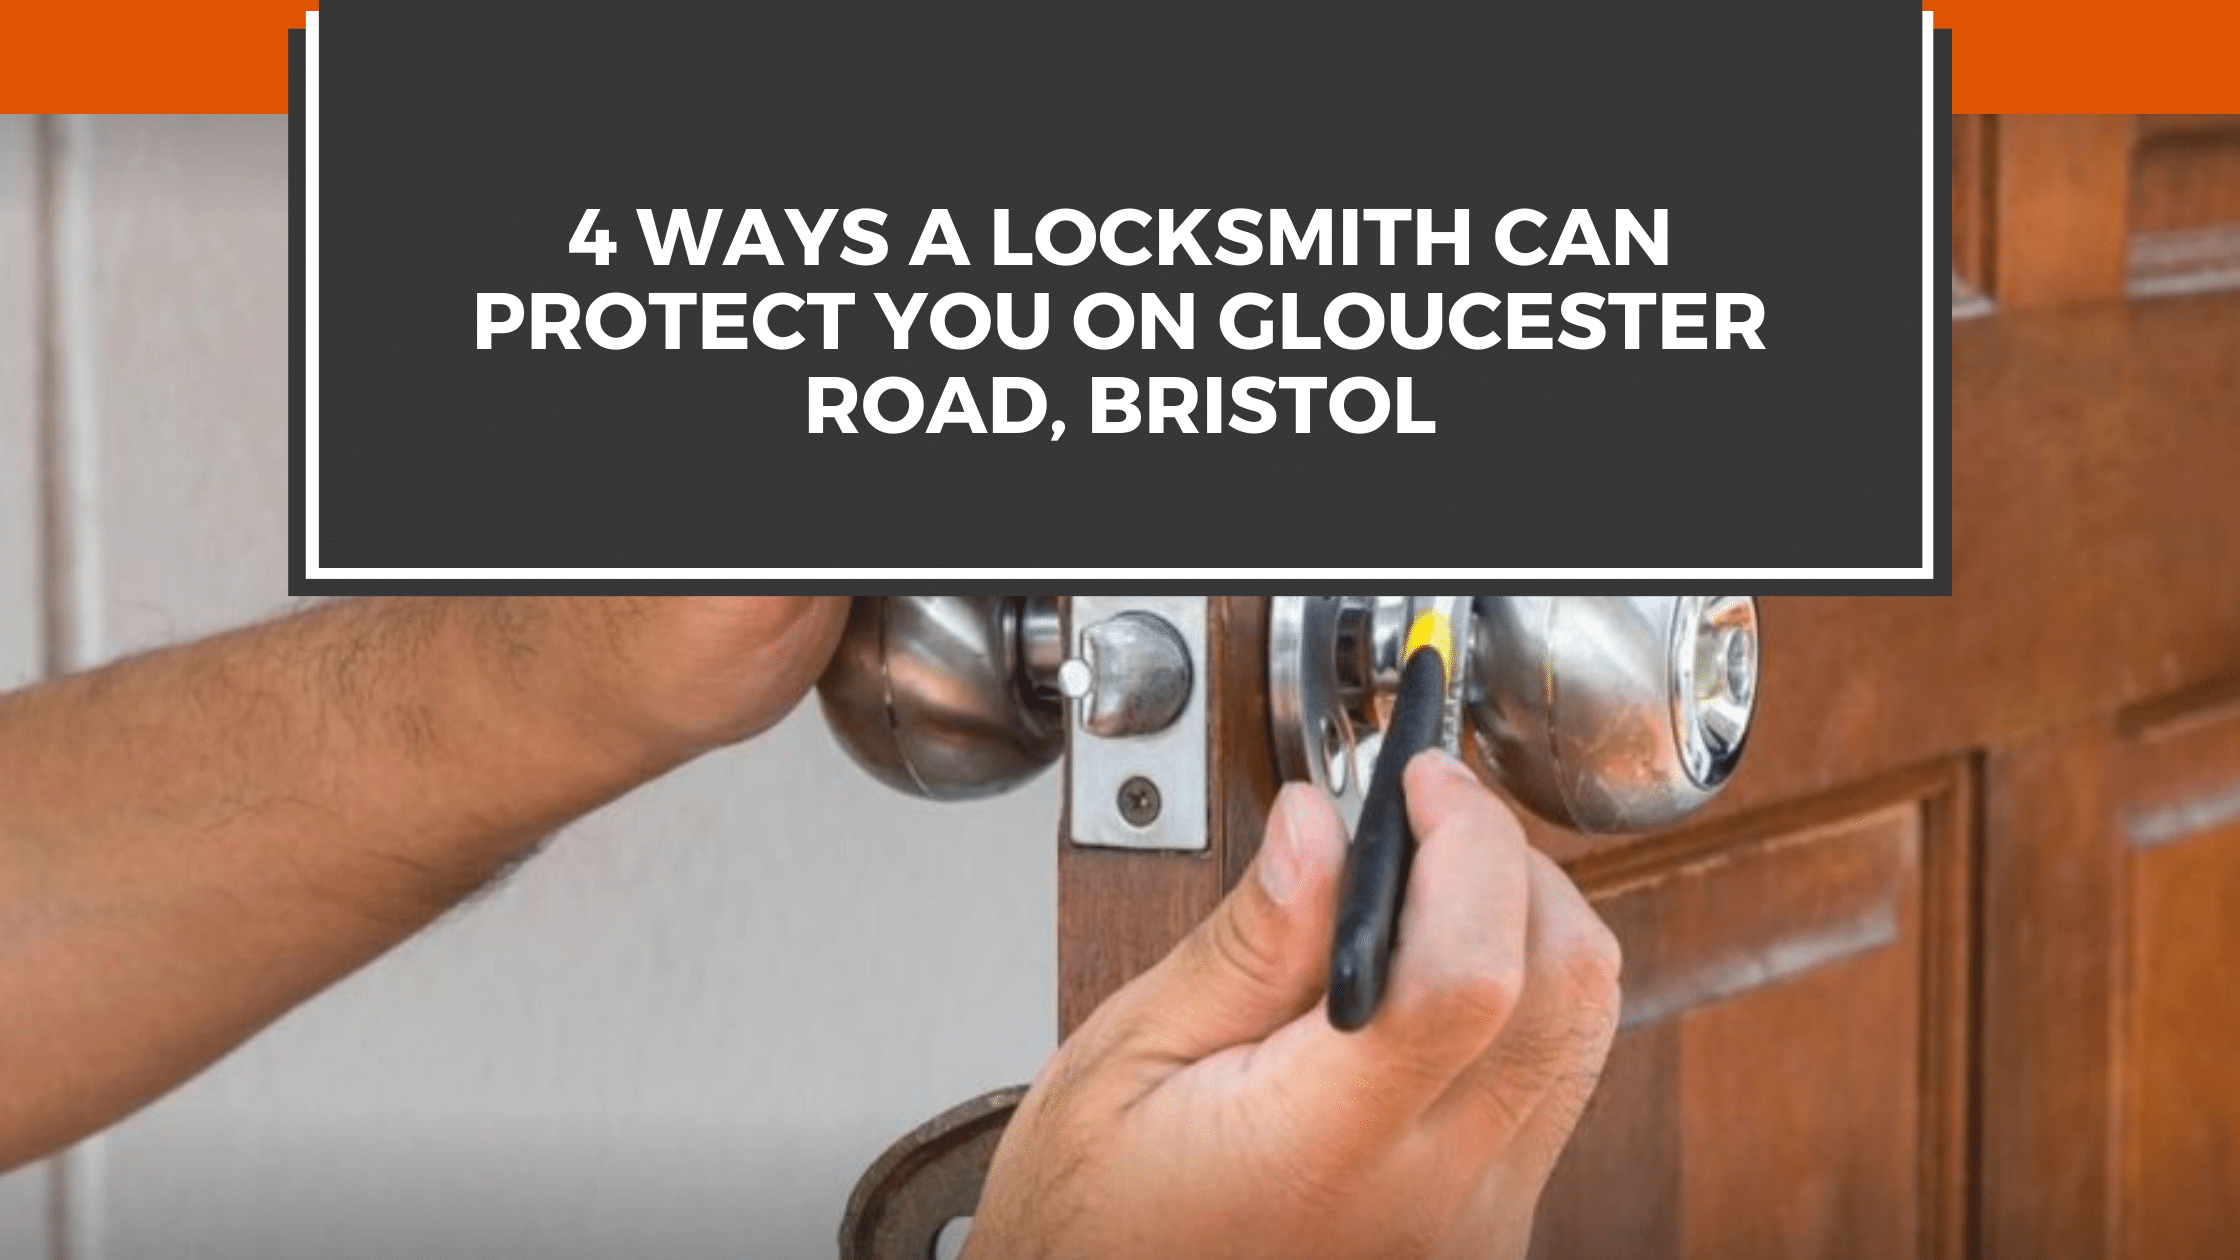 4 Ways A Locksmith Can Protect You on Gloucester Road, Bristol